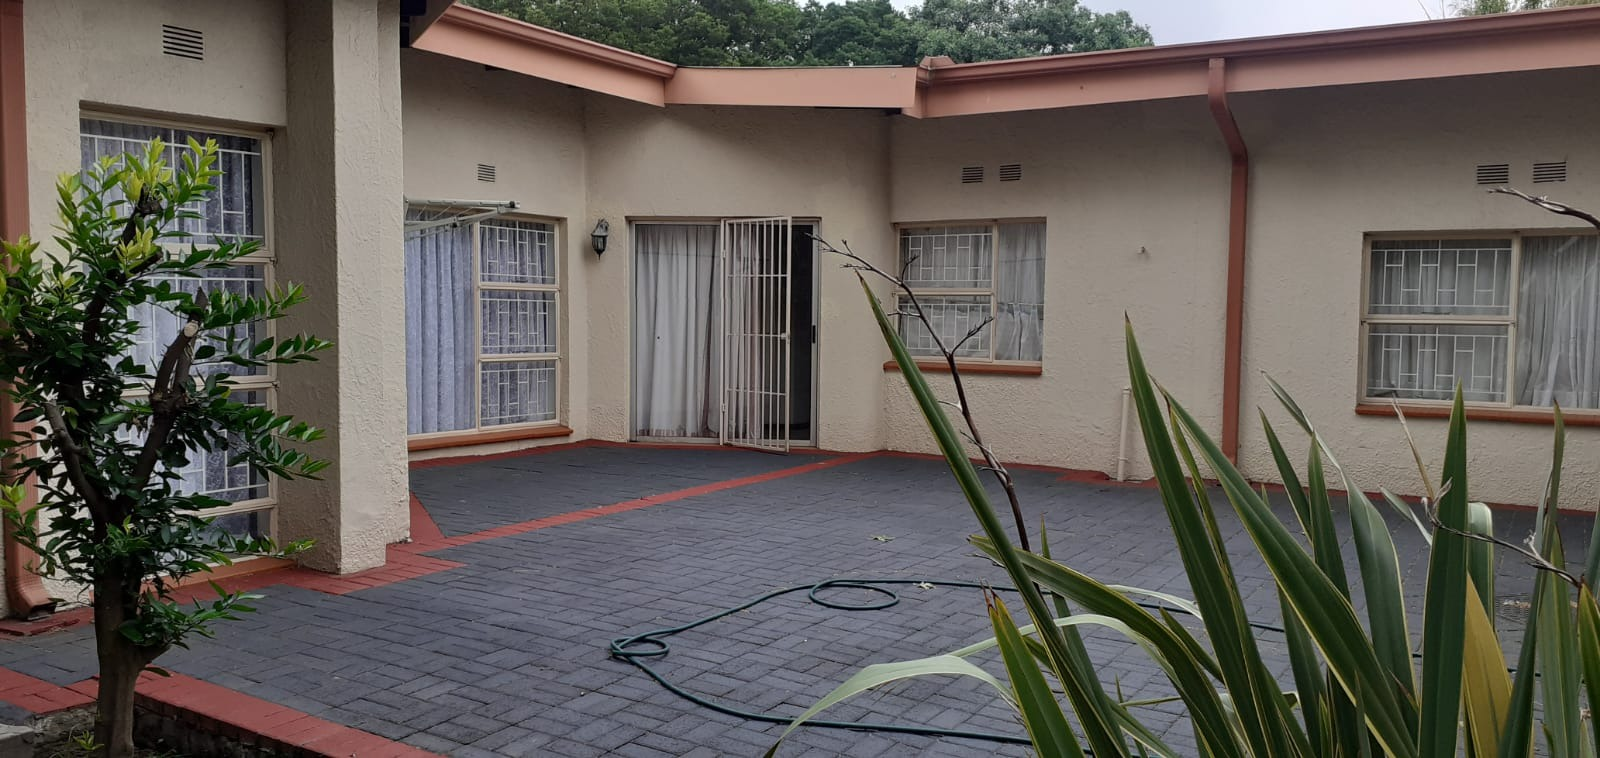 5 Bedroom House For Sale in Bethal